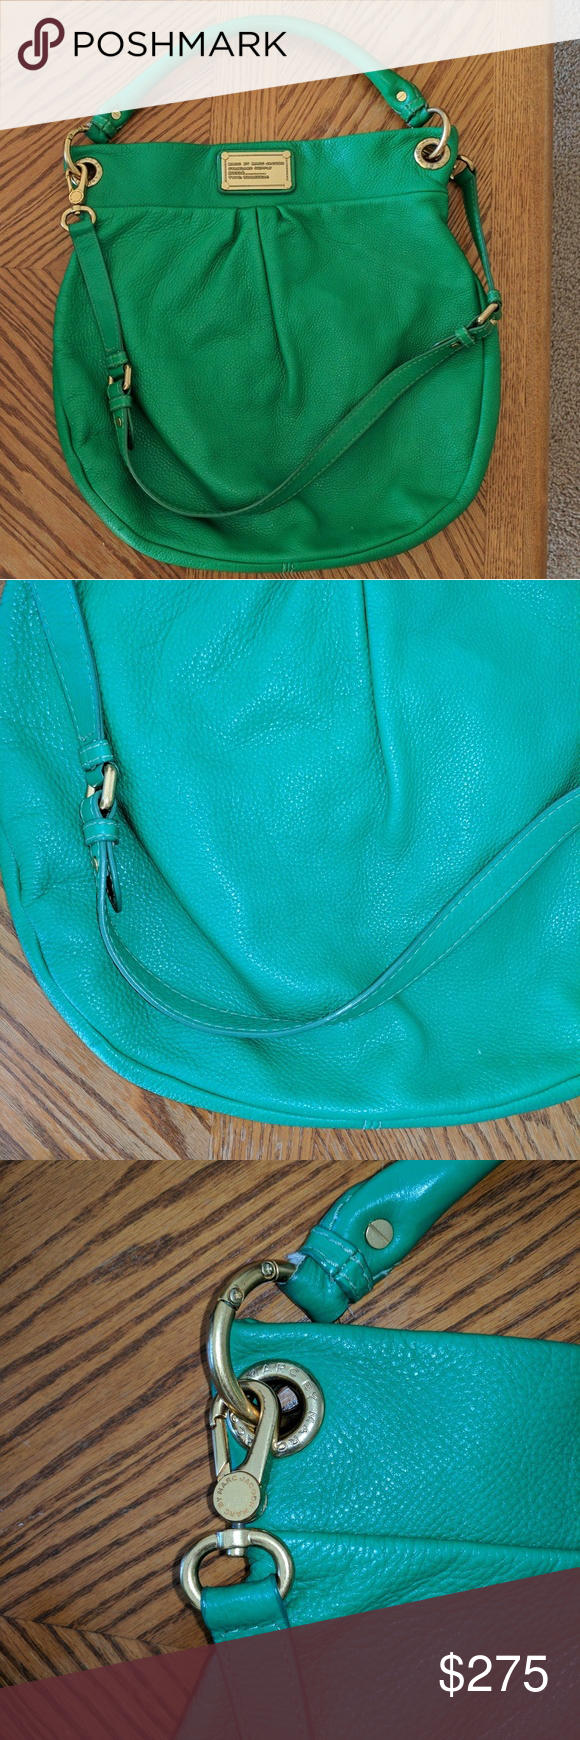 HTF color Marc jacobs classic q hillier hobo